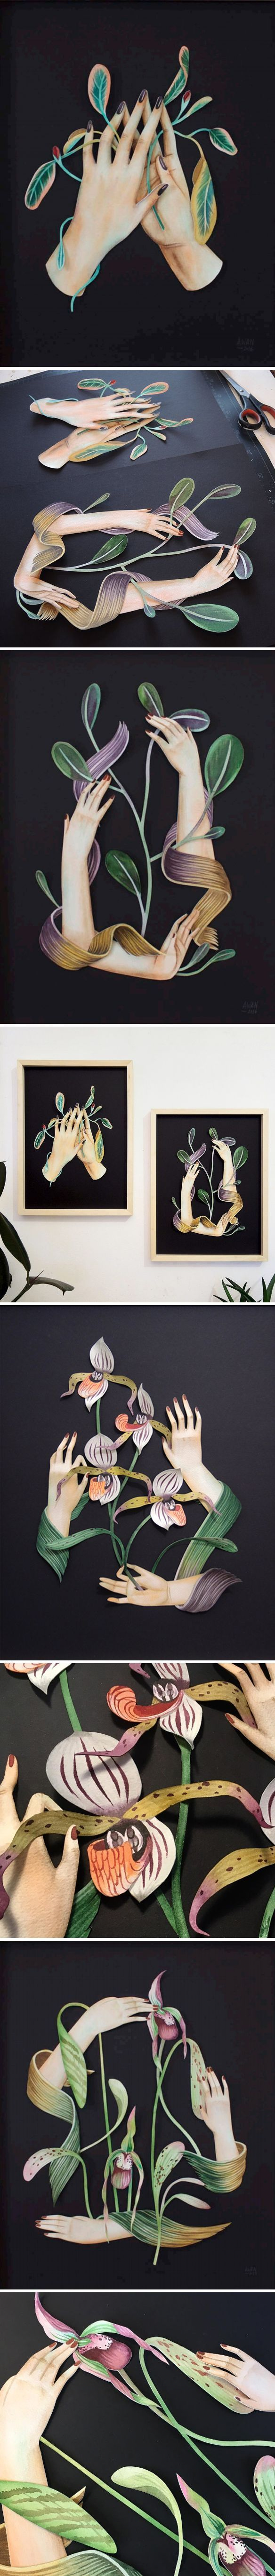 painted paper-cutting by andrea wan